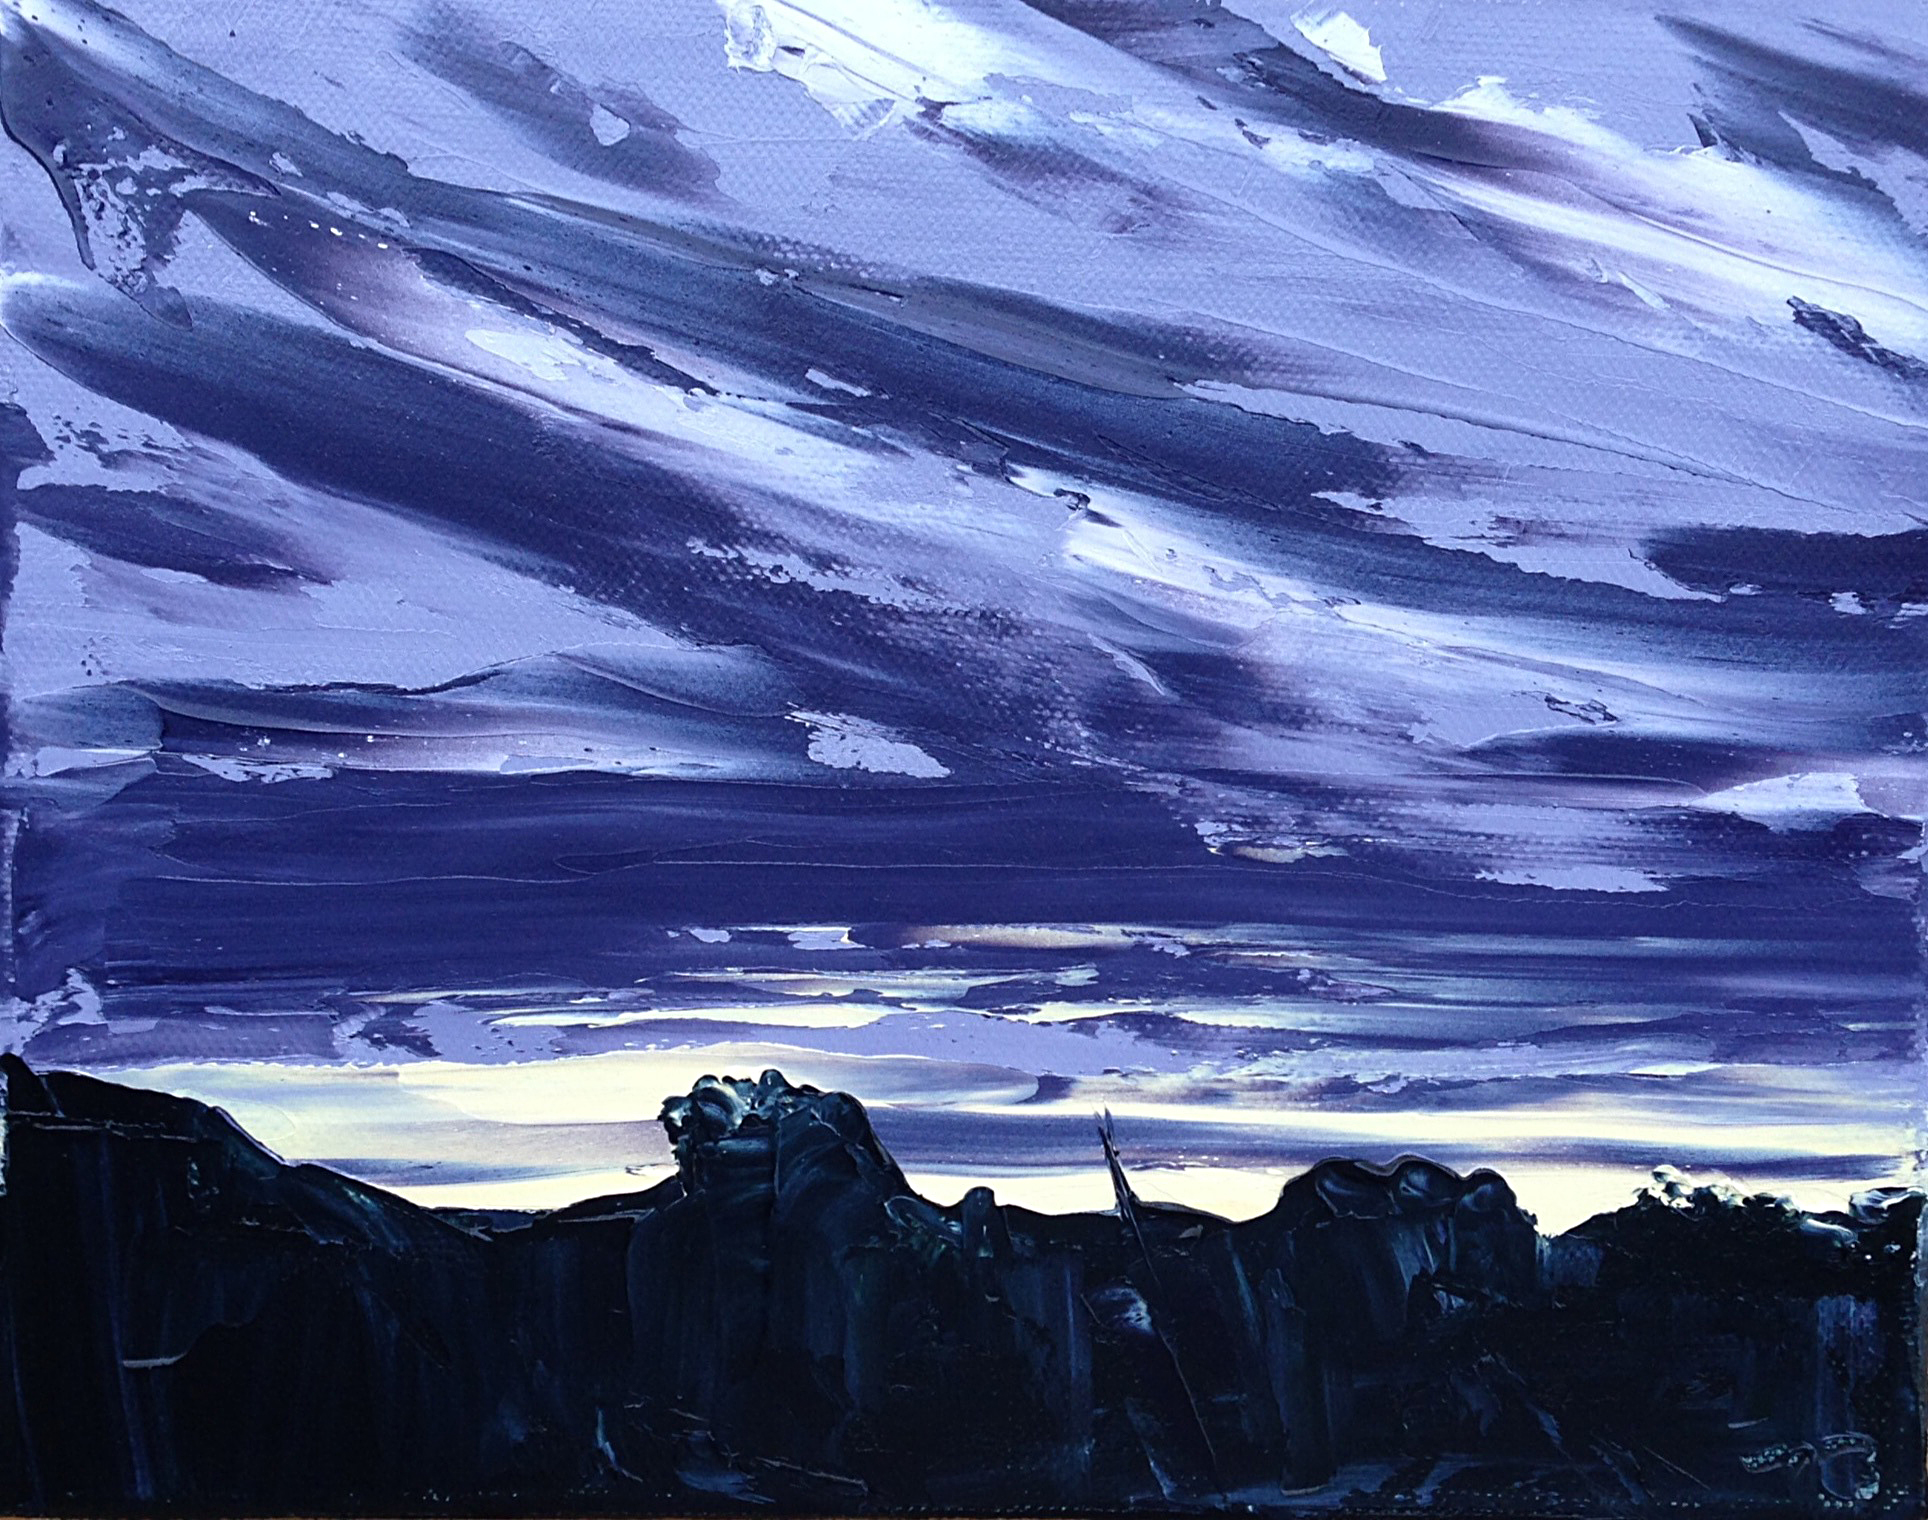 June 21, 5:36am, 29/30 8 x 10, oil on canvas.